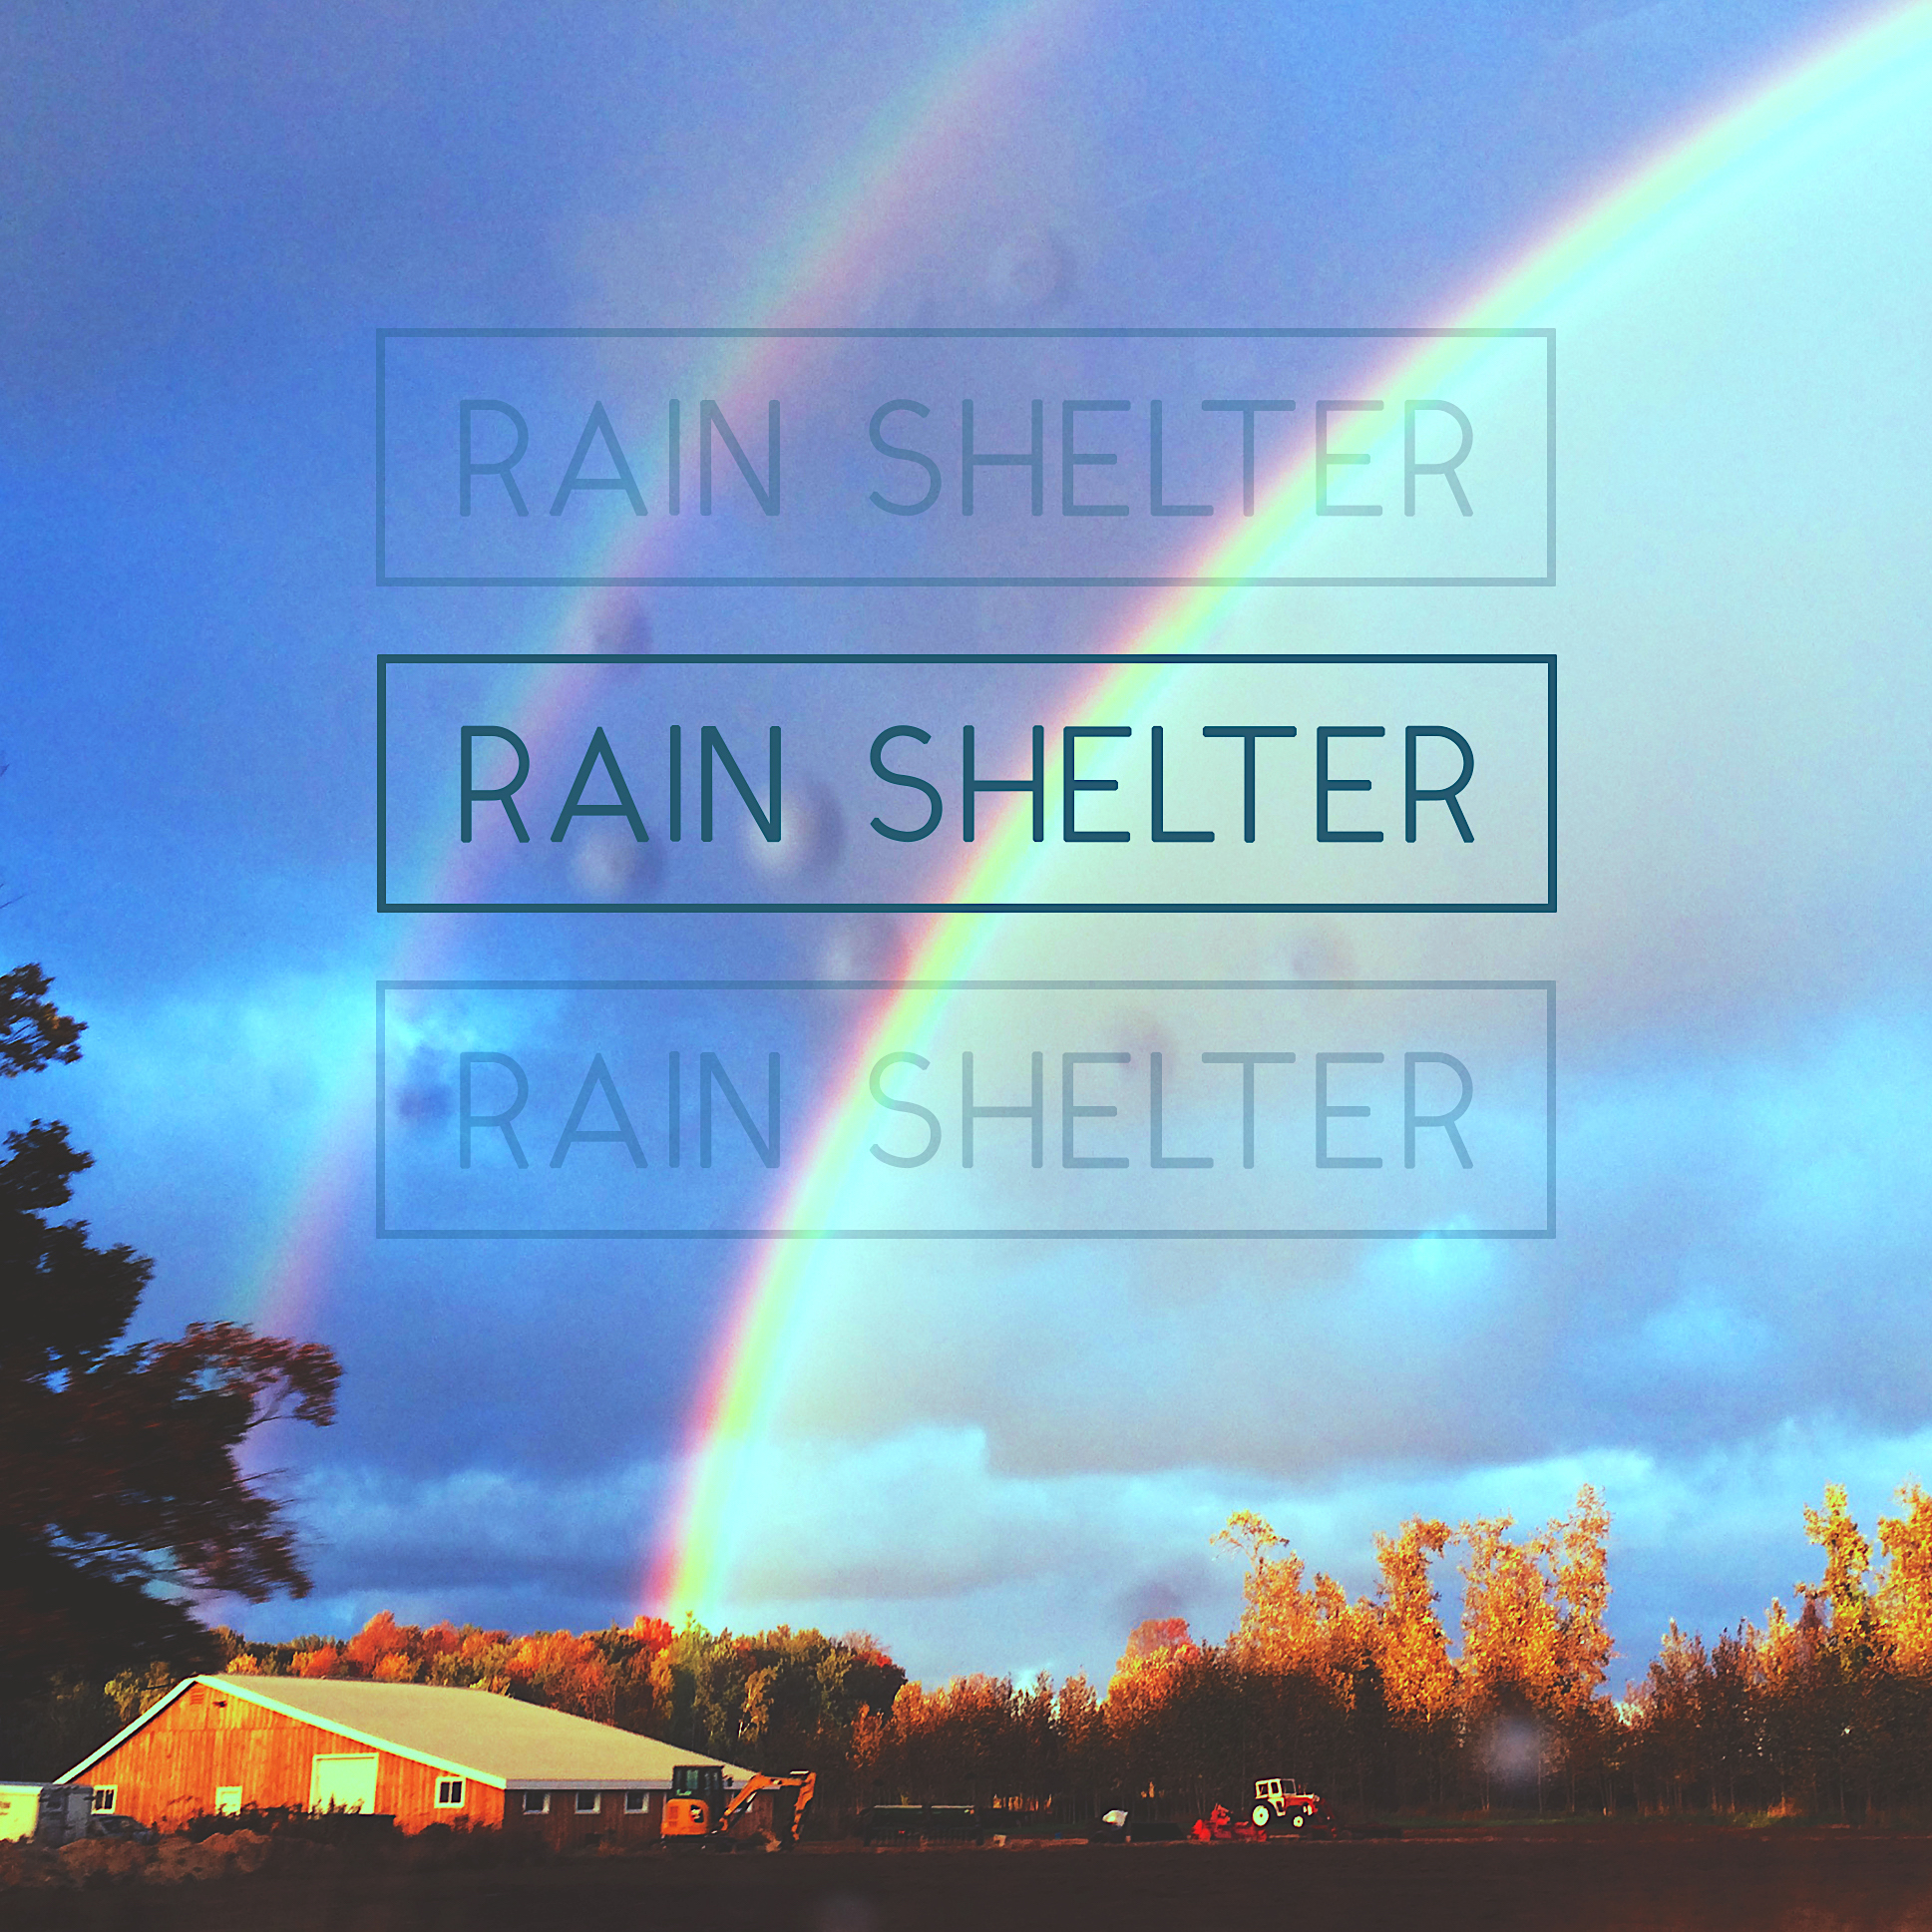 "Original image ""Rain Shelter"" taken by Ian Aisling"